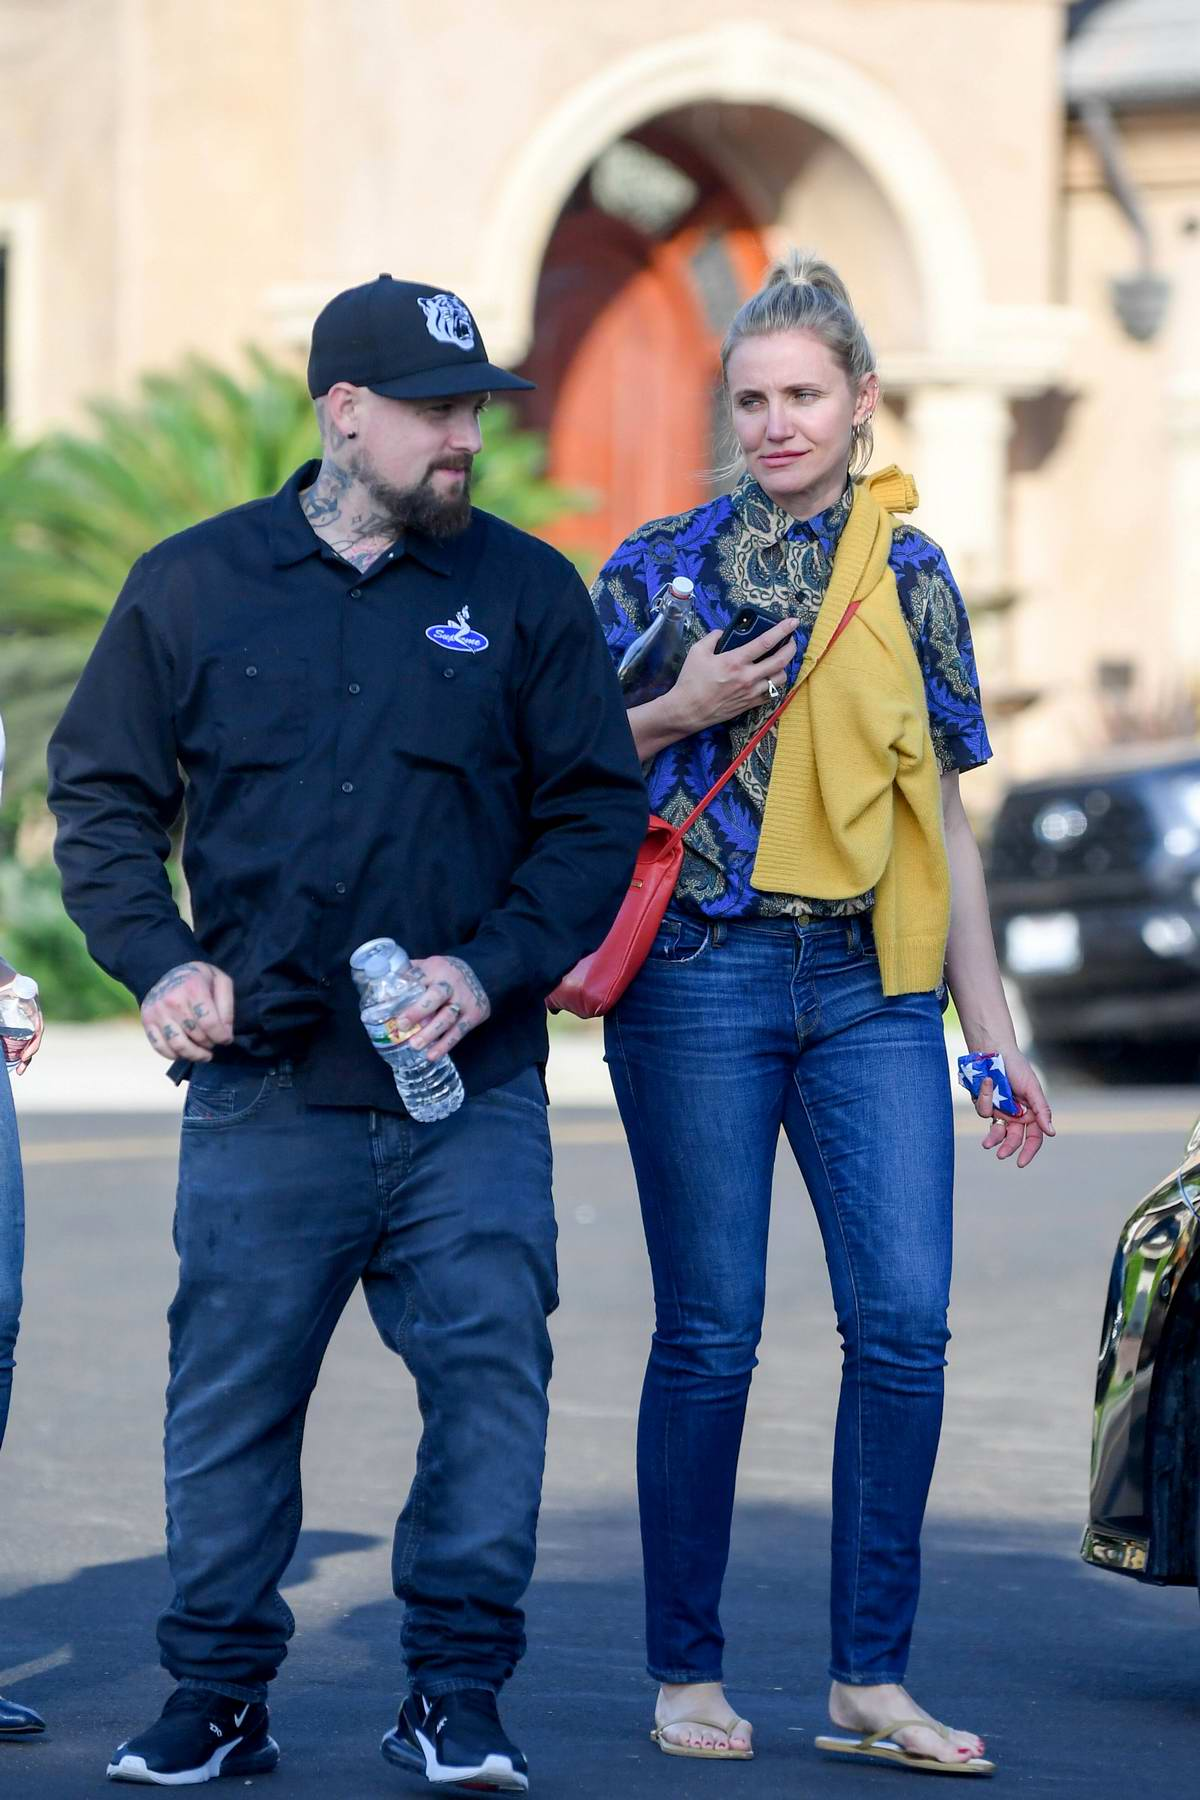 Cameron Diaz and Benji Madden leaves a party at a friend's house in Los Angeles